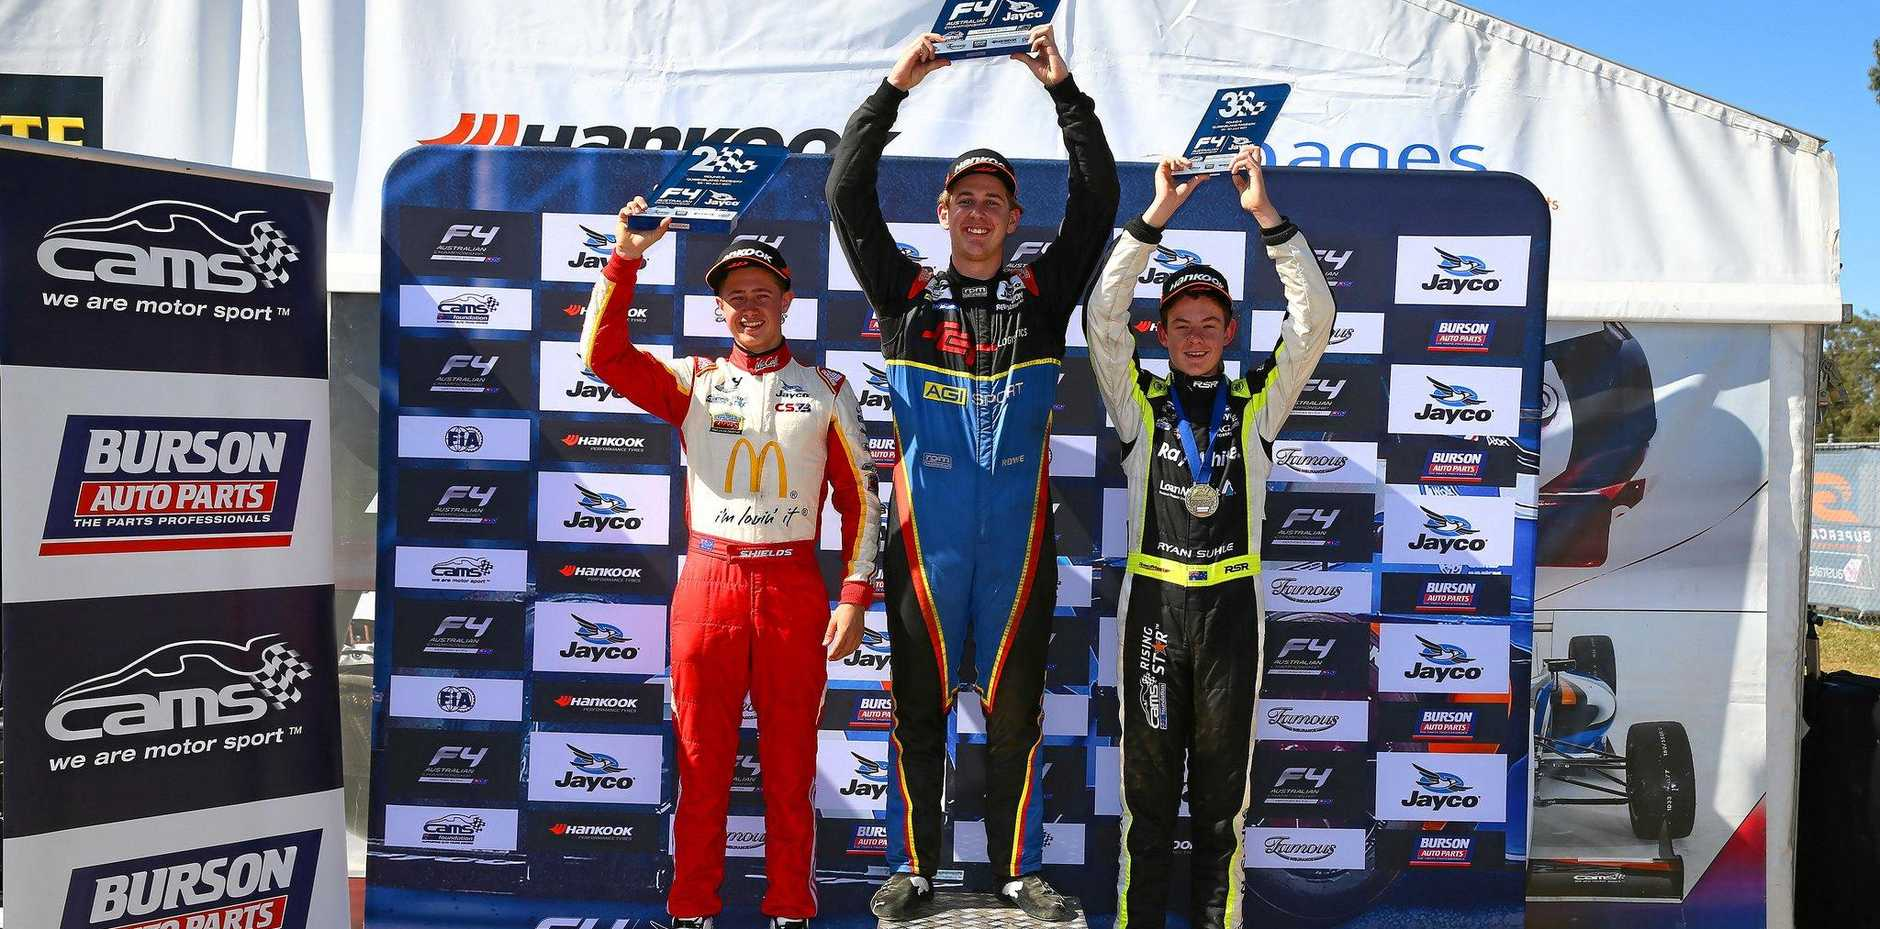 ON THE PODIUM: Toowoomba driver Cameron Shields (left) after finishing second at the Ipswich round fo the Australian Formula 4 Championship, with round winner Nick Rowe and third-placed Ryan Suhle.